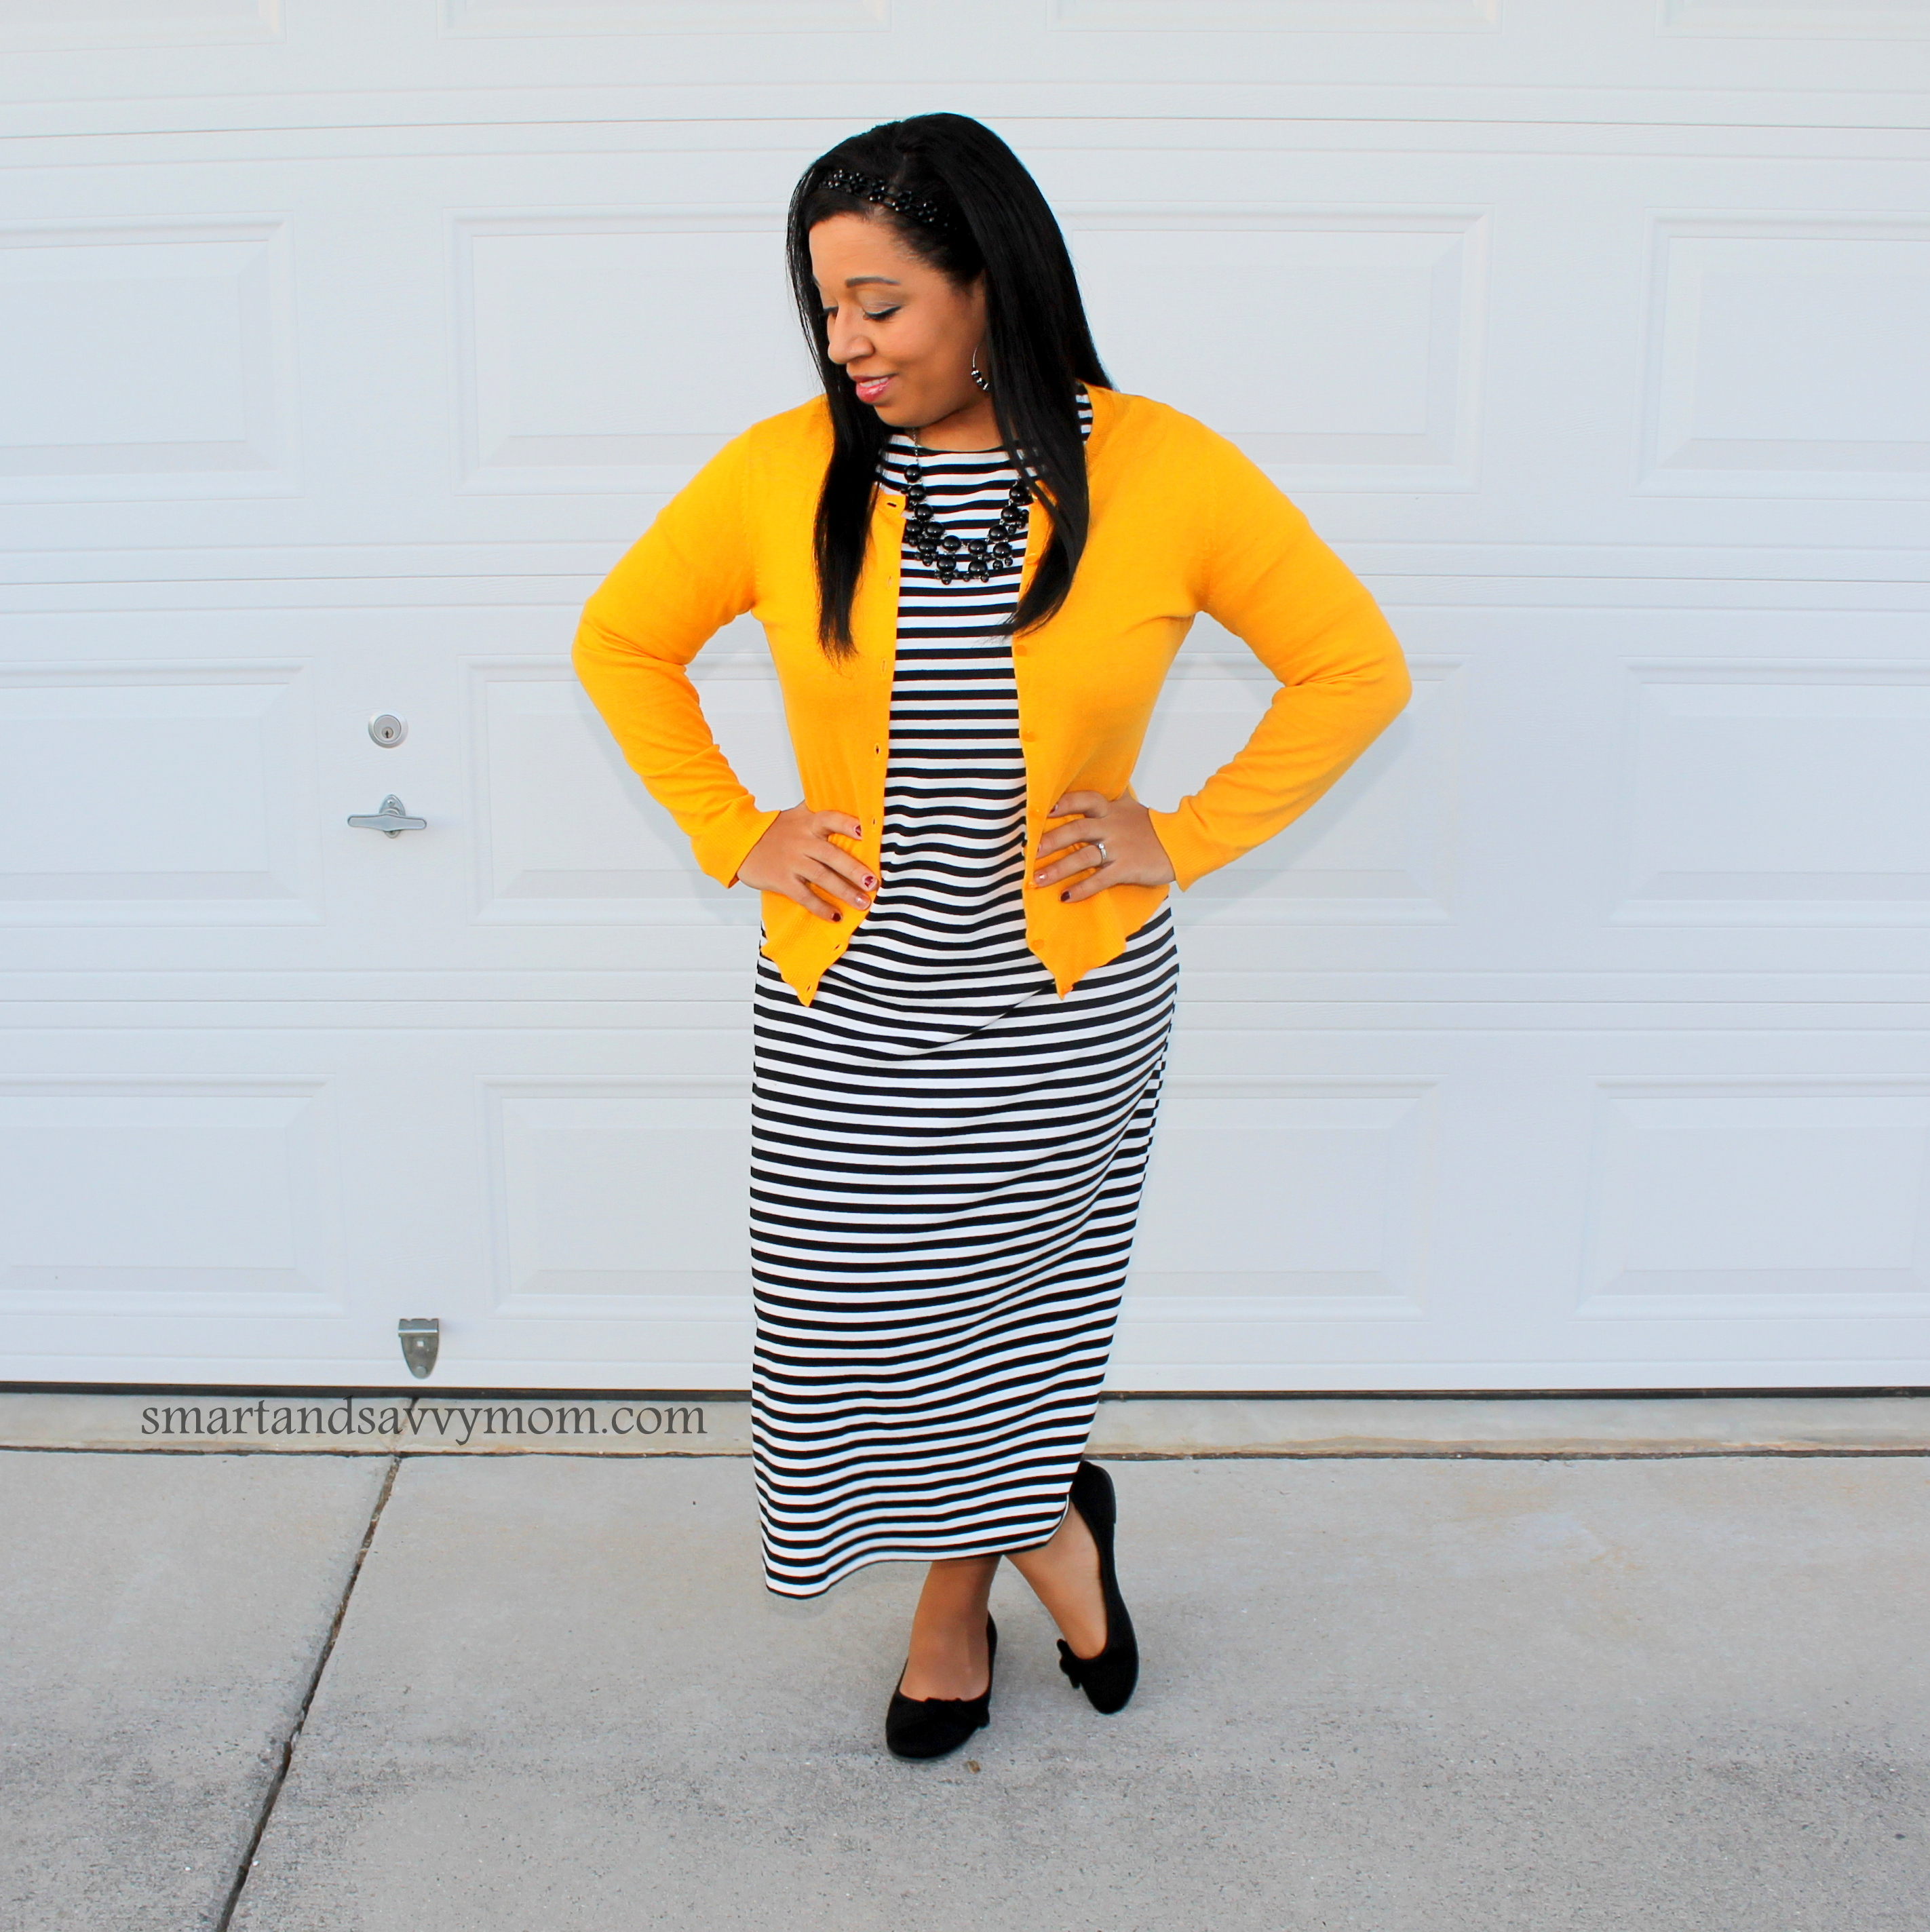 black and white striped midi dress with yellow cardigan modest outfit idea